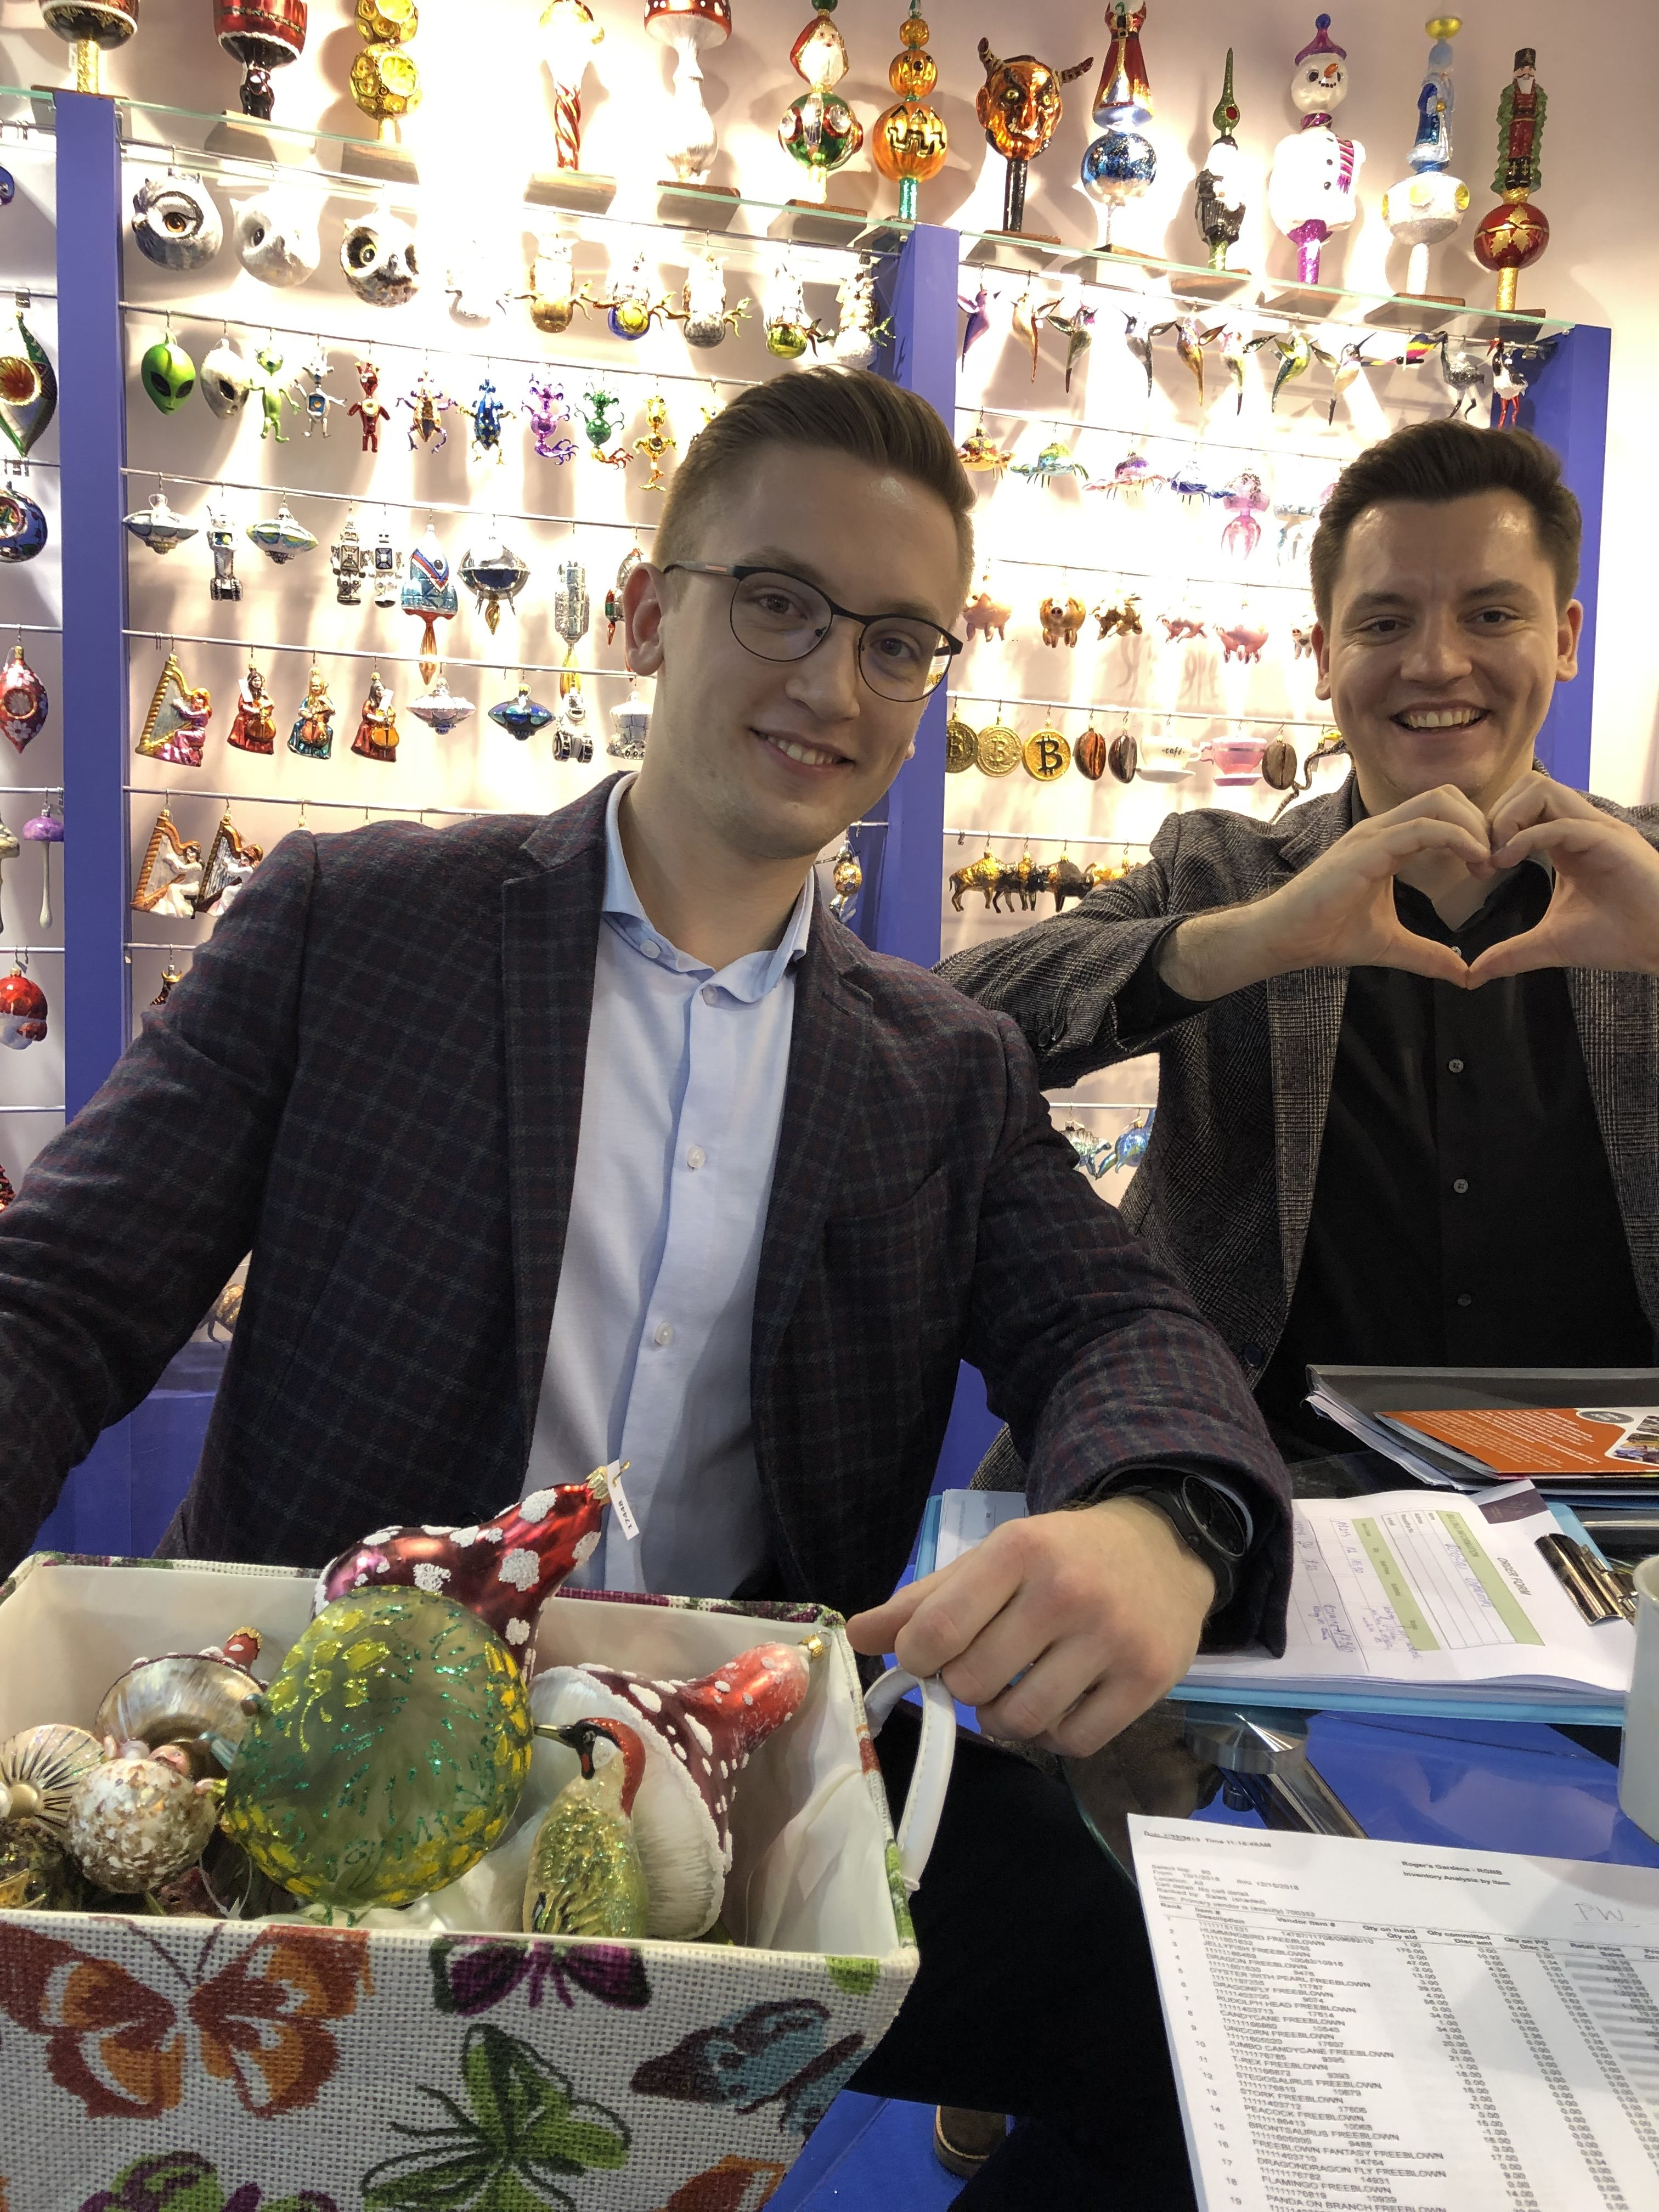 An image of two representatives of the vendors we work with for ordering ornaments for Christmas